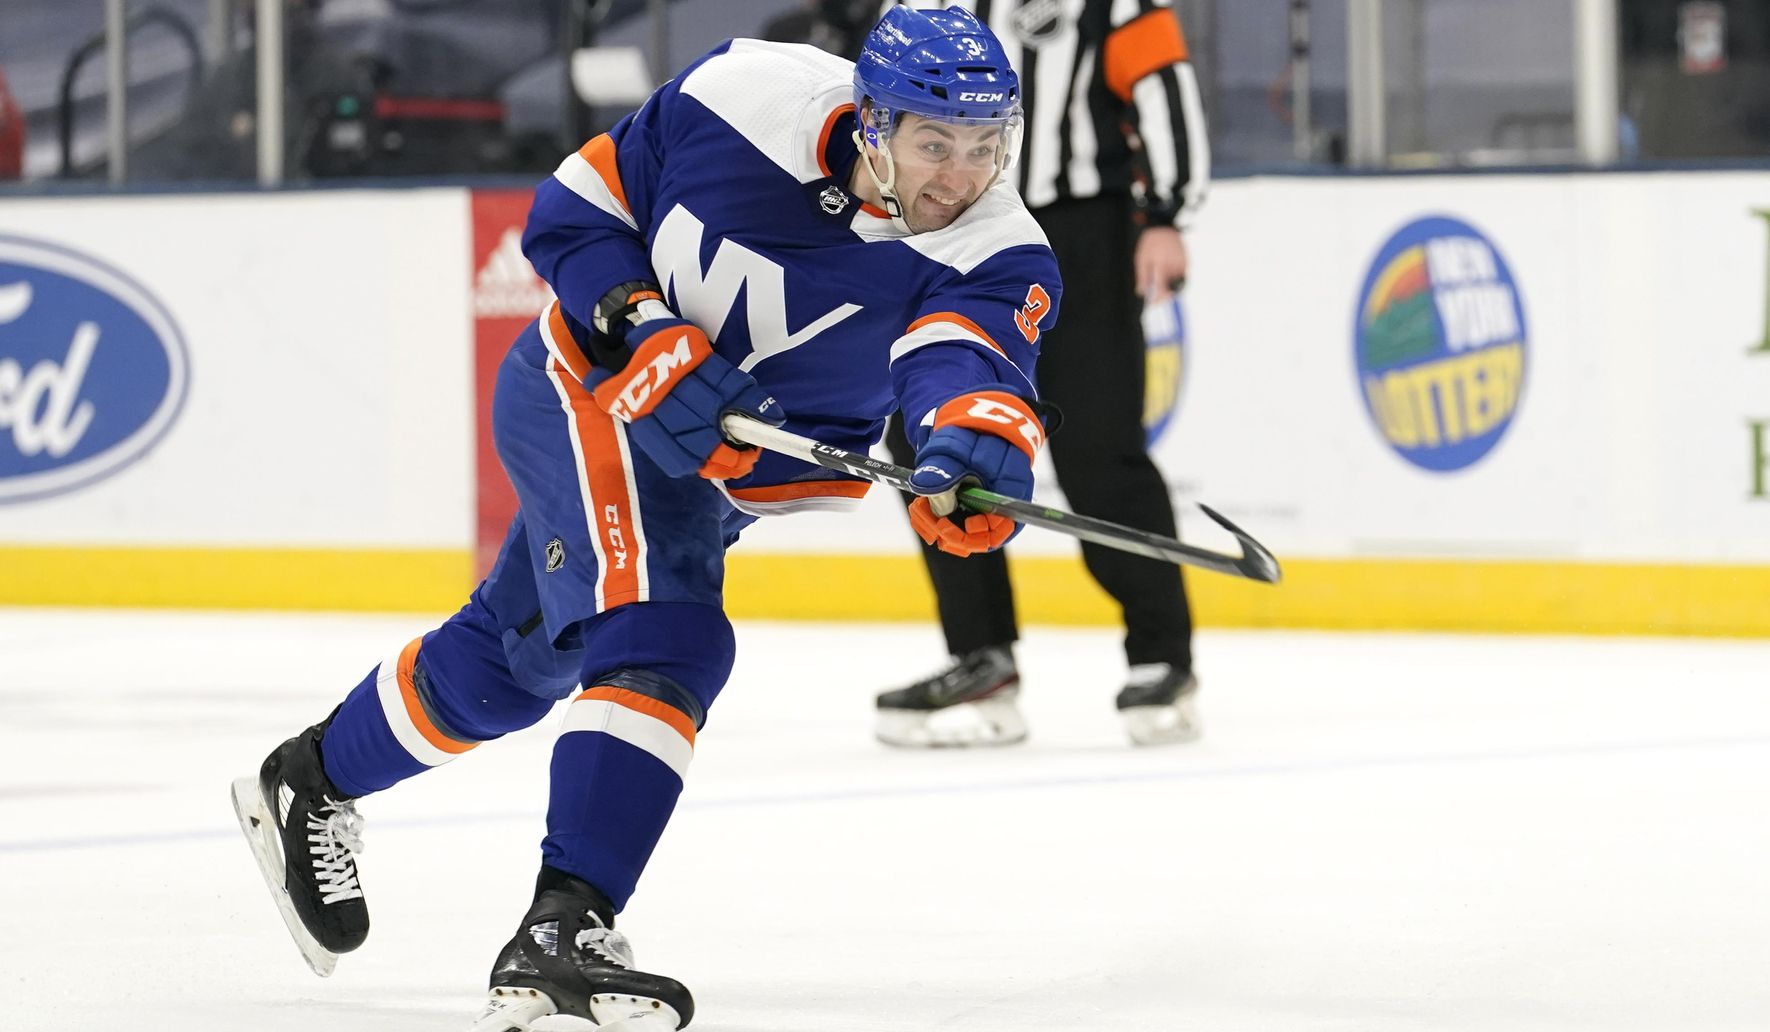 Isles welcome back fans, beat Devils for 7th straight win